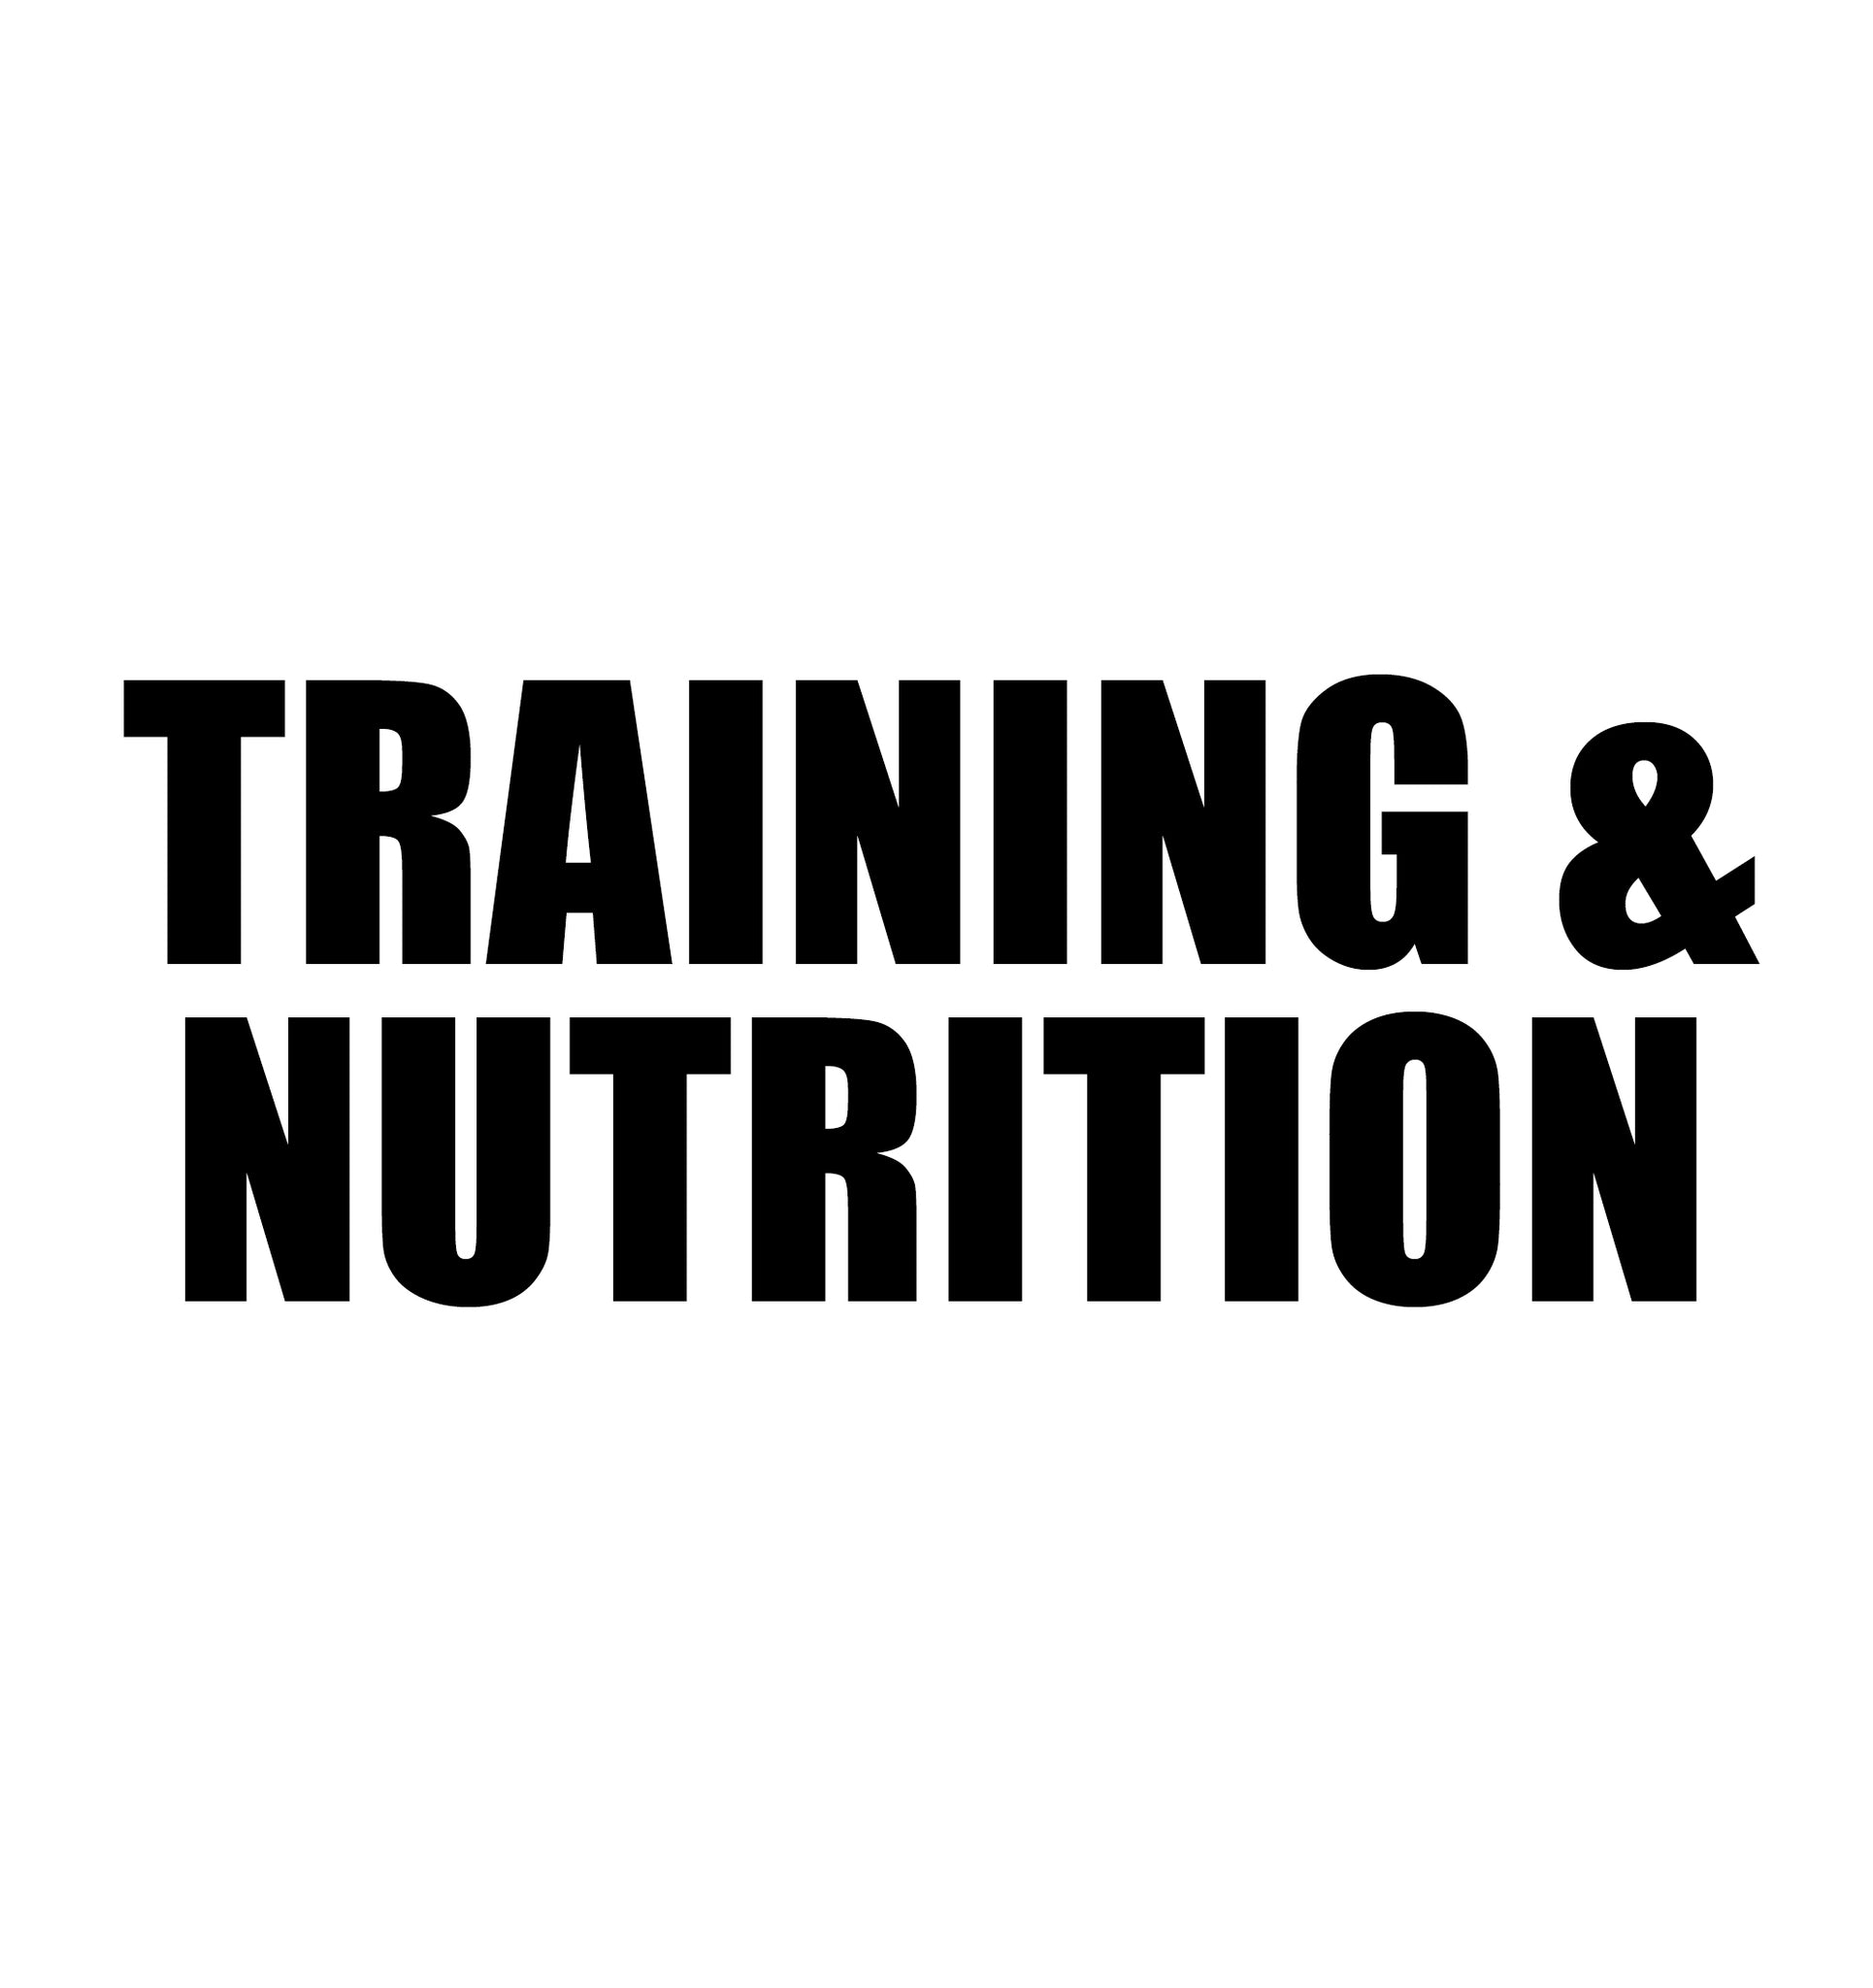 $900 12 Week Training & Nutrition